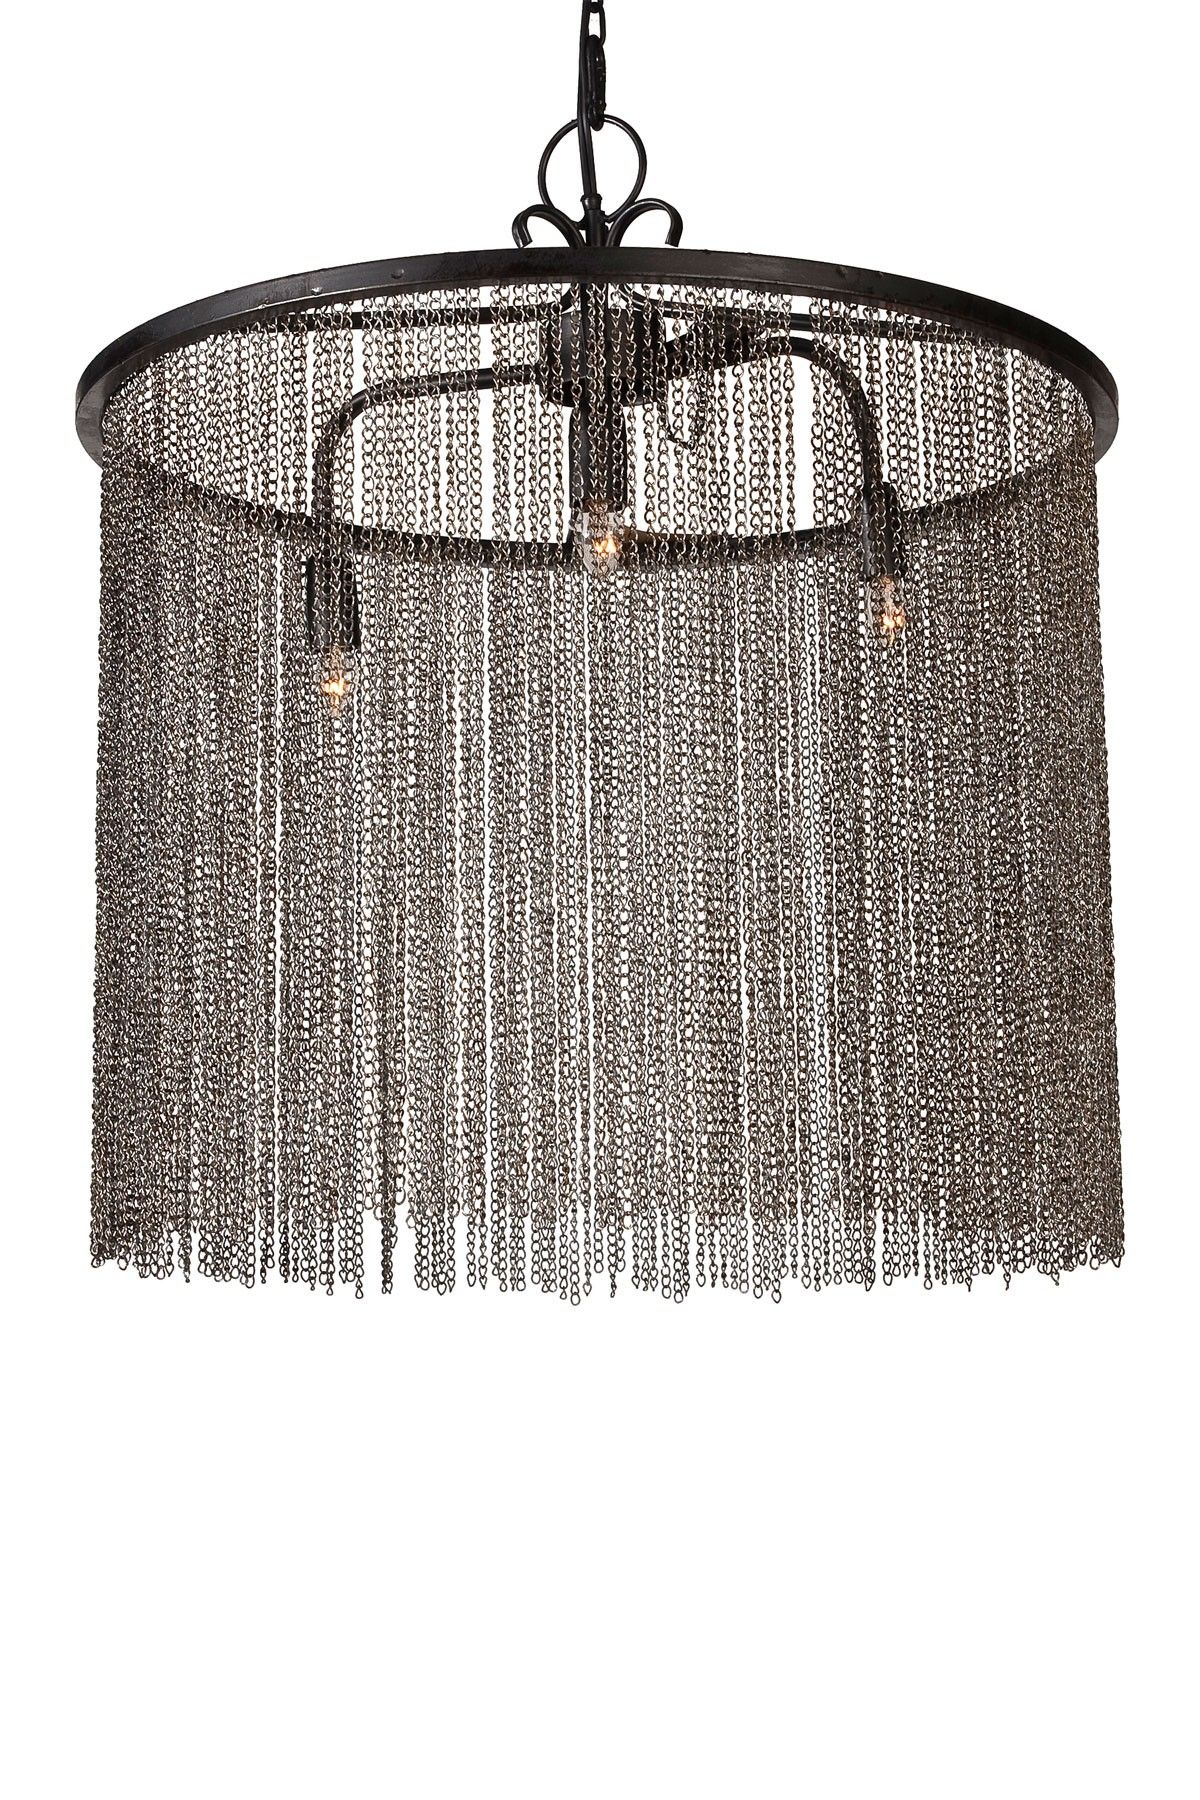 Allied Rich Hanging Chain Link Chandelier With Images Drum Chandelier Chandelier Lighting Chandelier